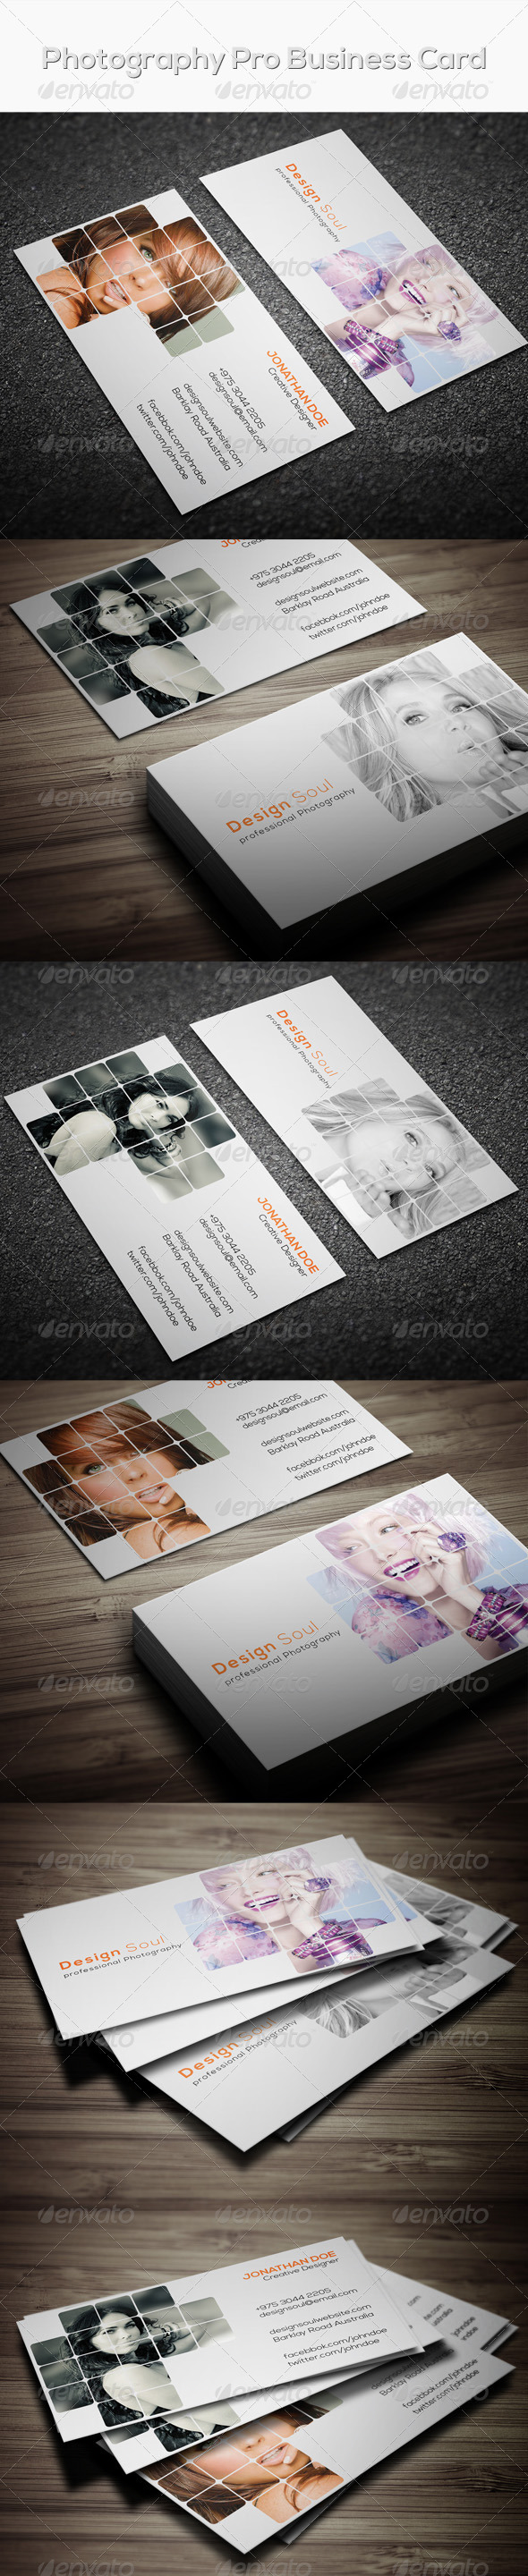 GraphicRiver Photography Pro Business Card 7615001